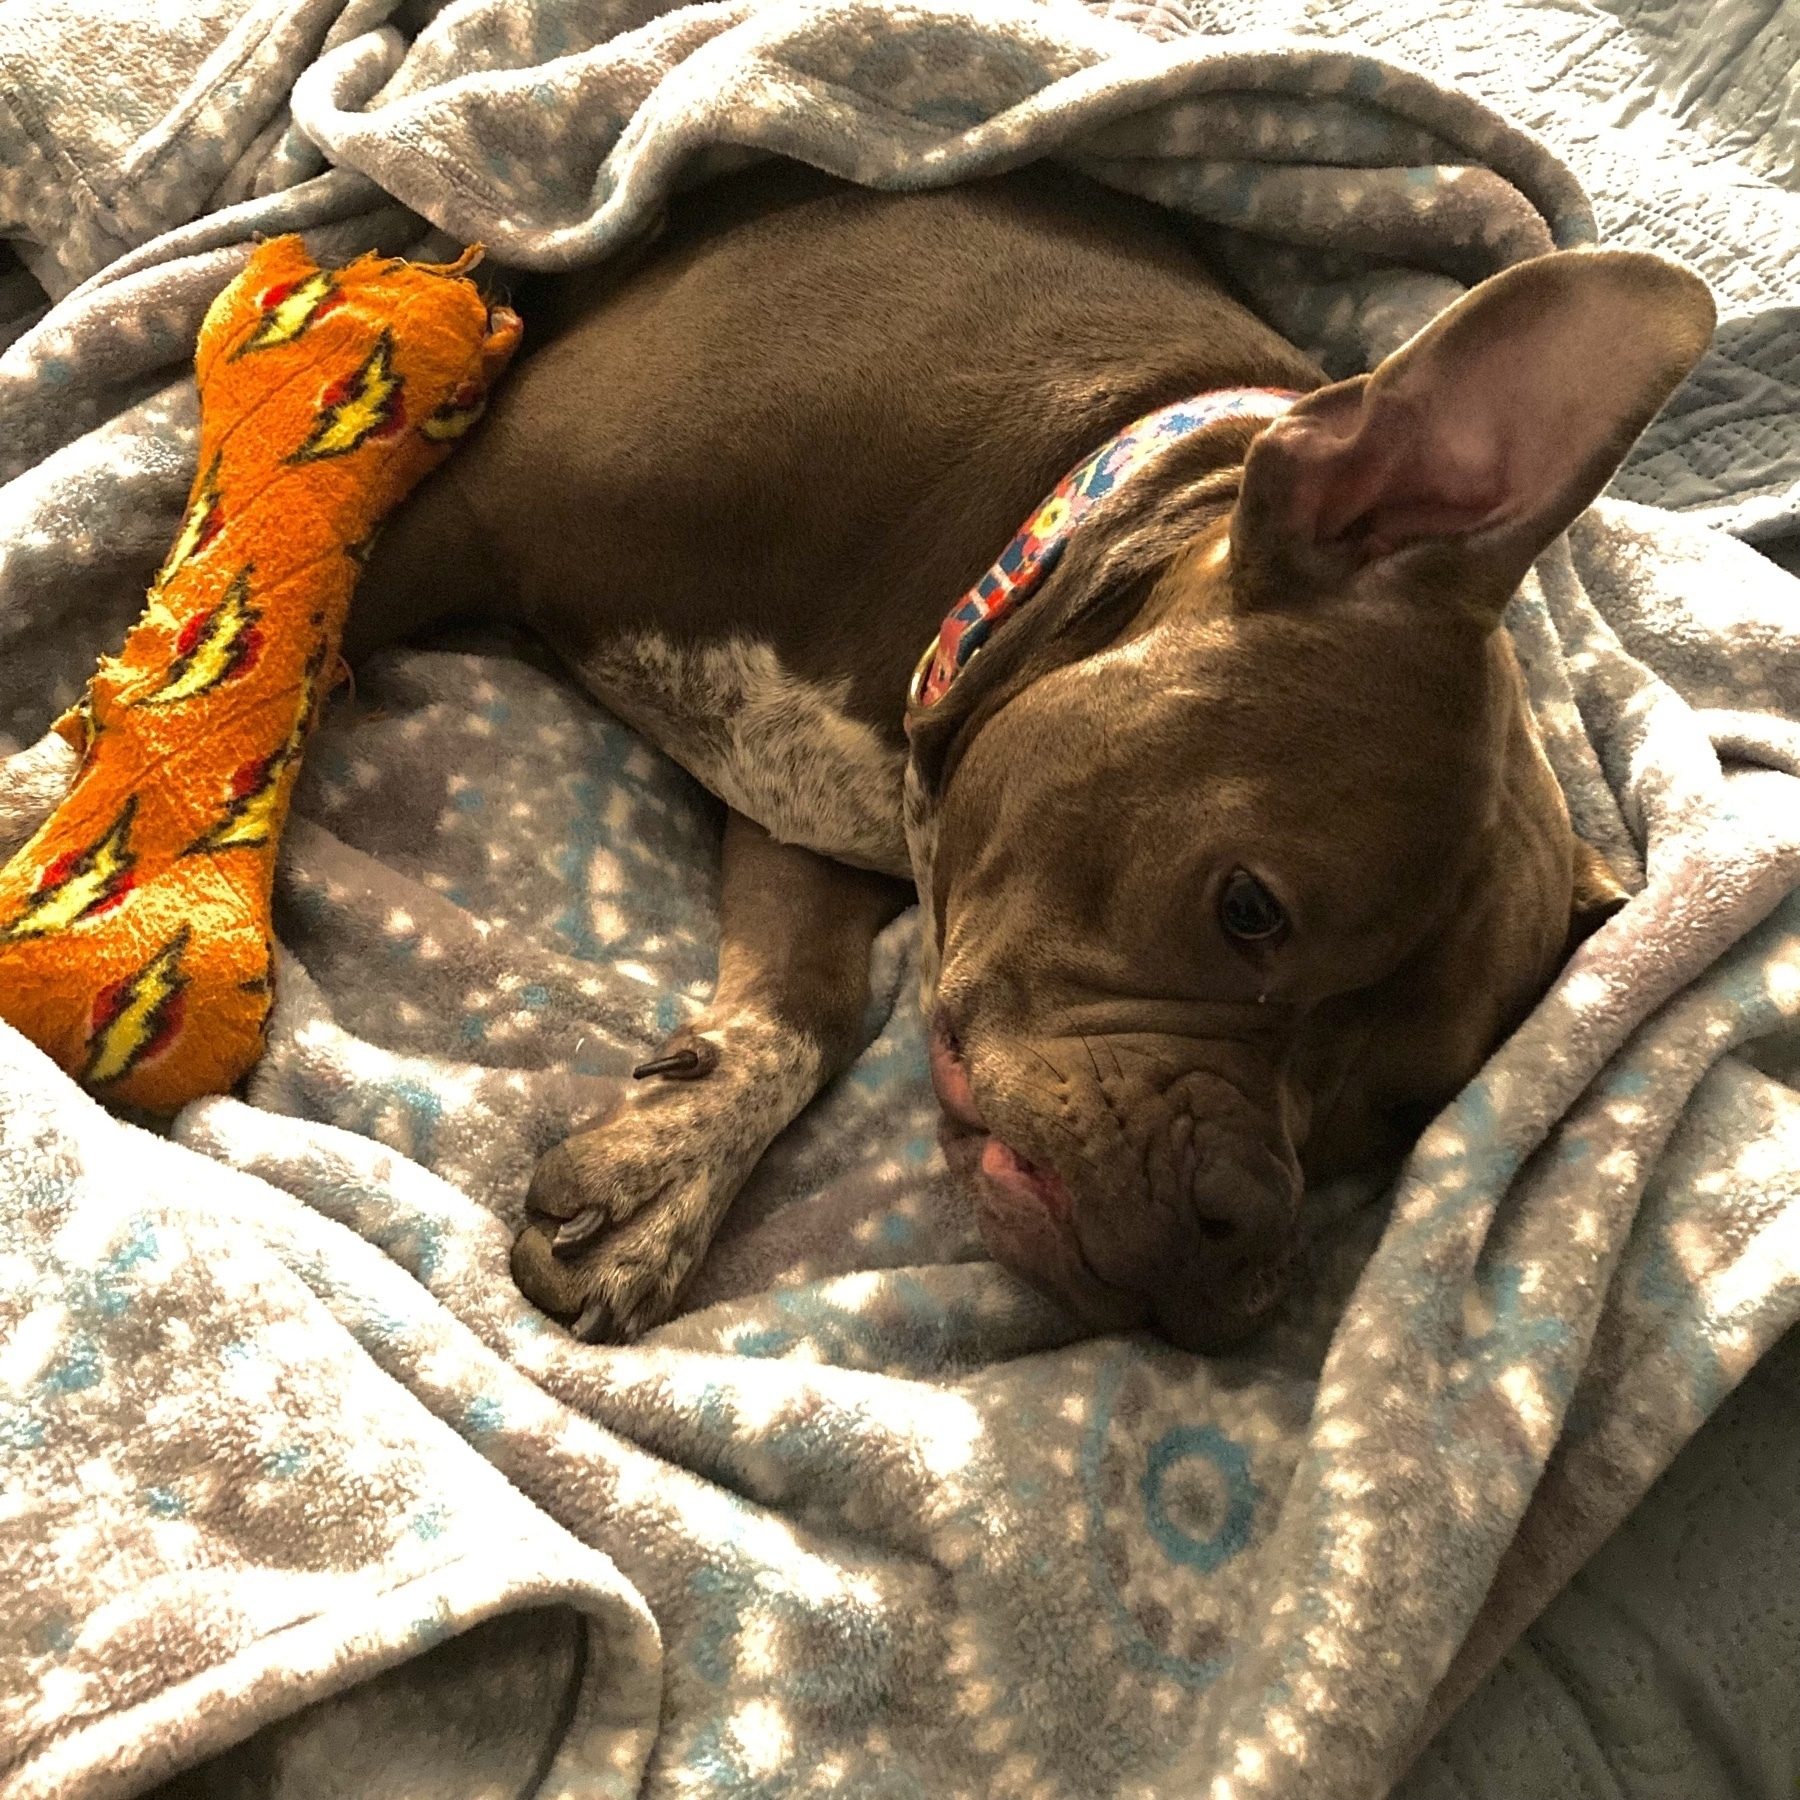 Dog curled up in bed with toy.